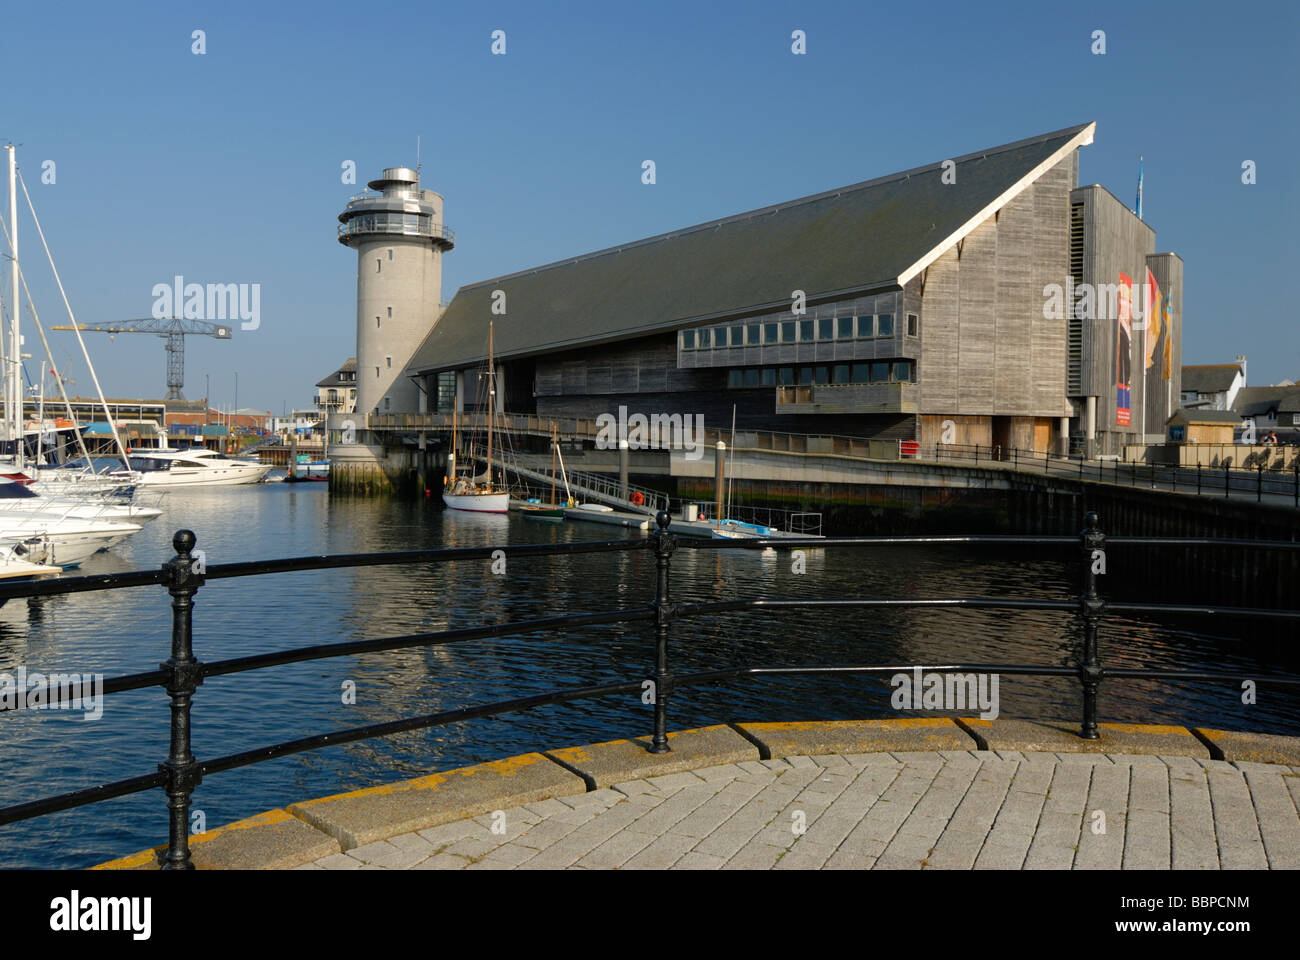 National Maritime Museum Falmouth Cornwall UK - Stock Image